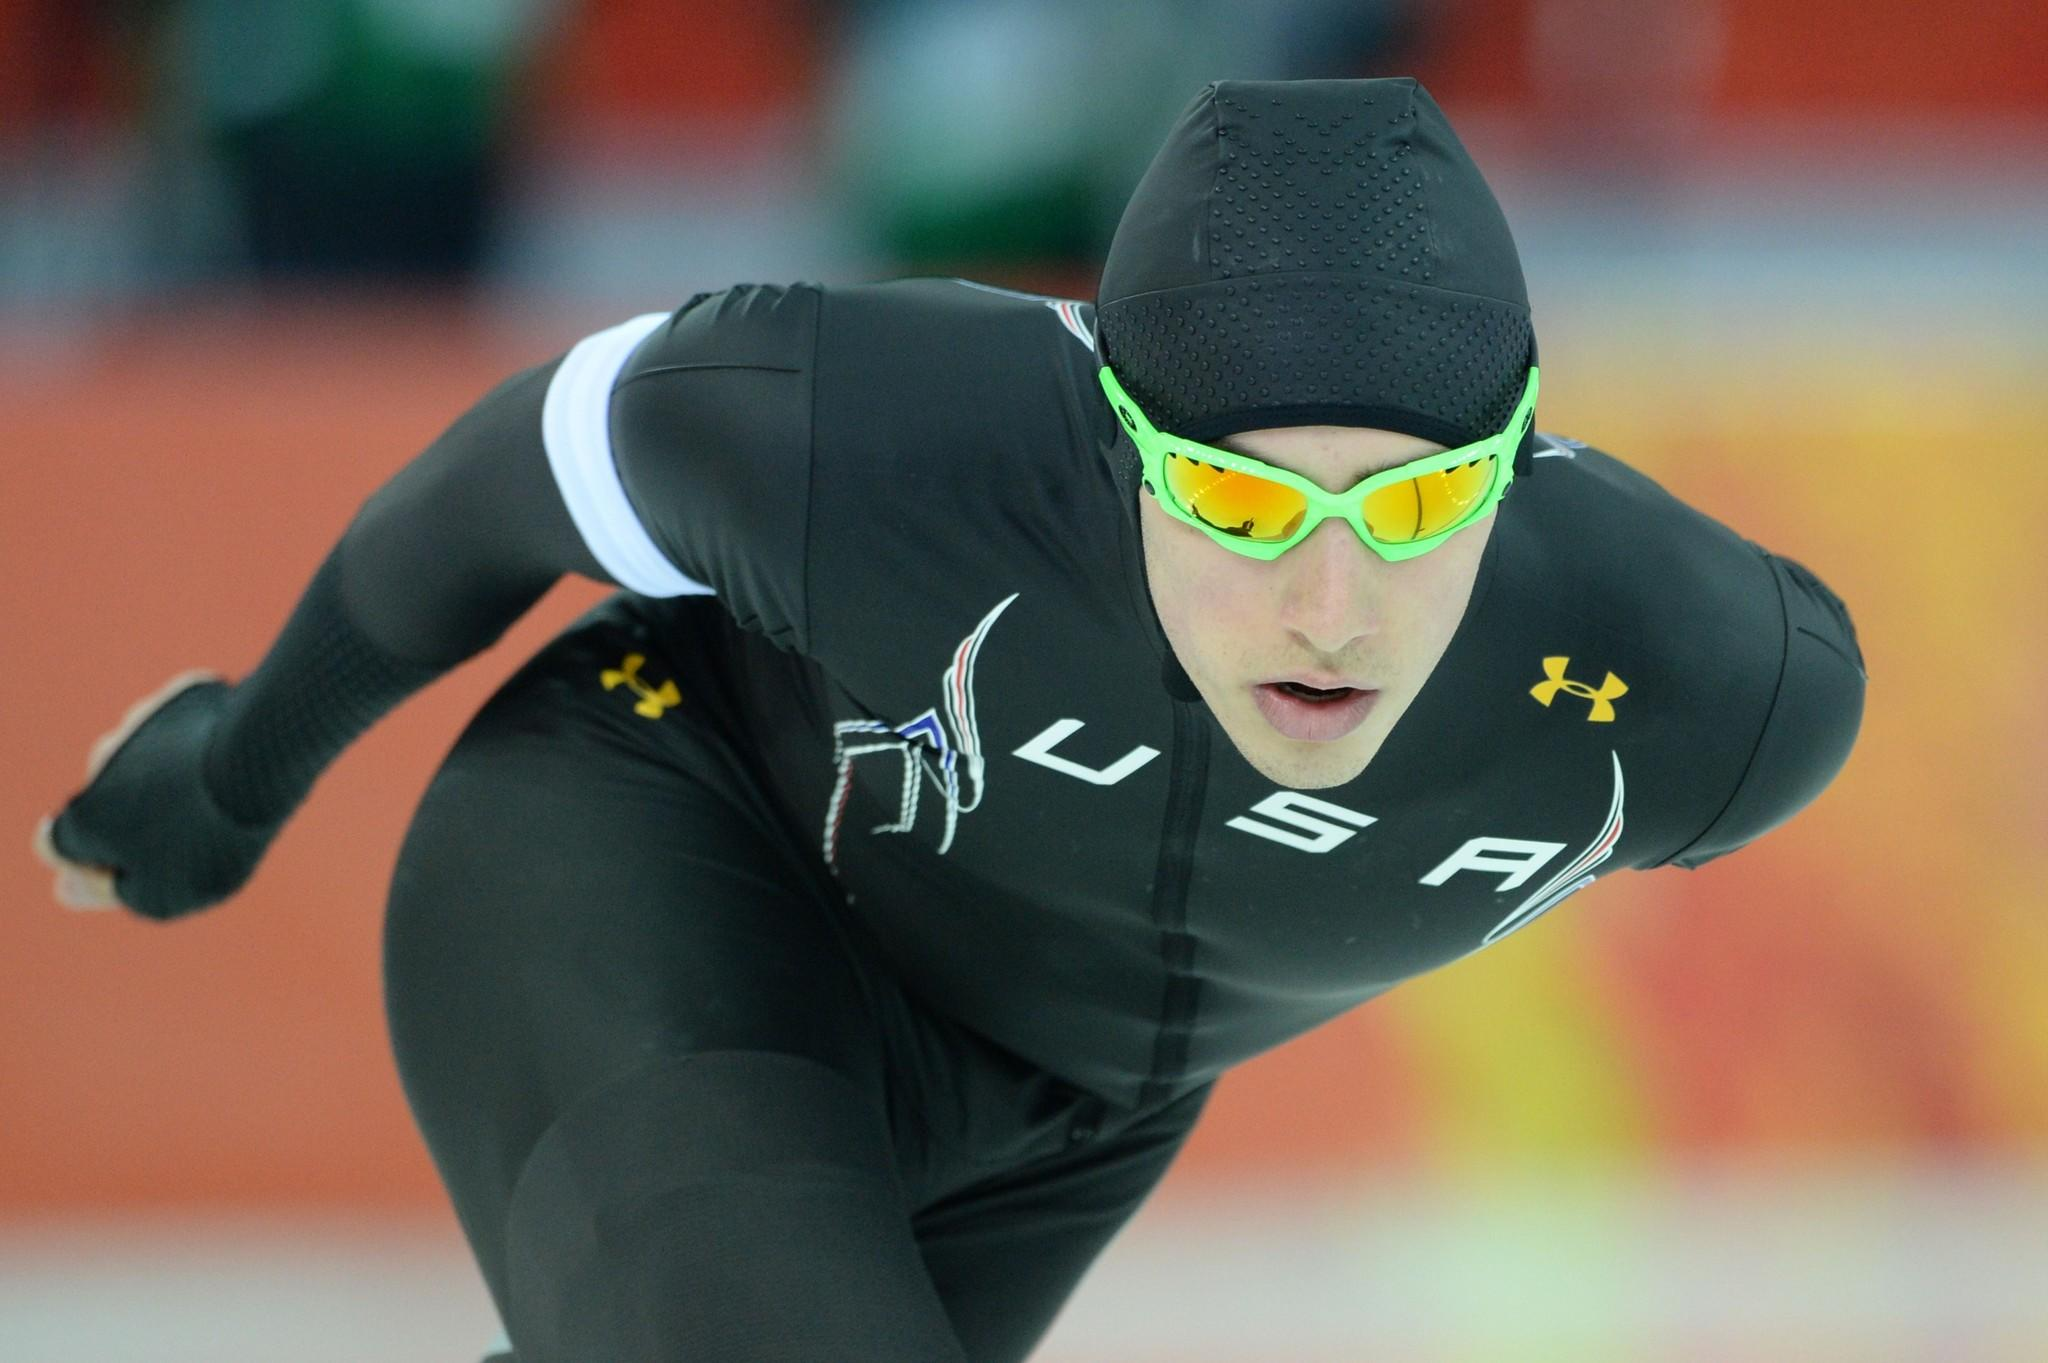 Emery Lehman competes in the Men's Speed Skating 5,000m at the Adler Arena during the 2014 Sochi Winter Olympics.